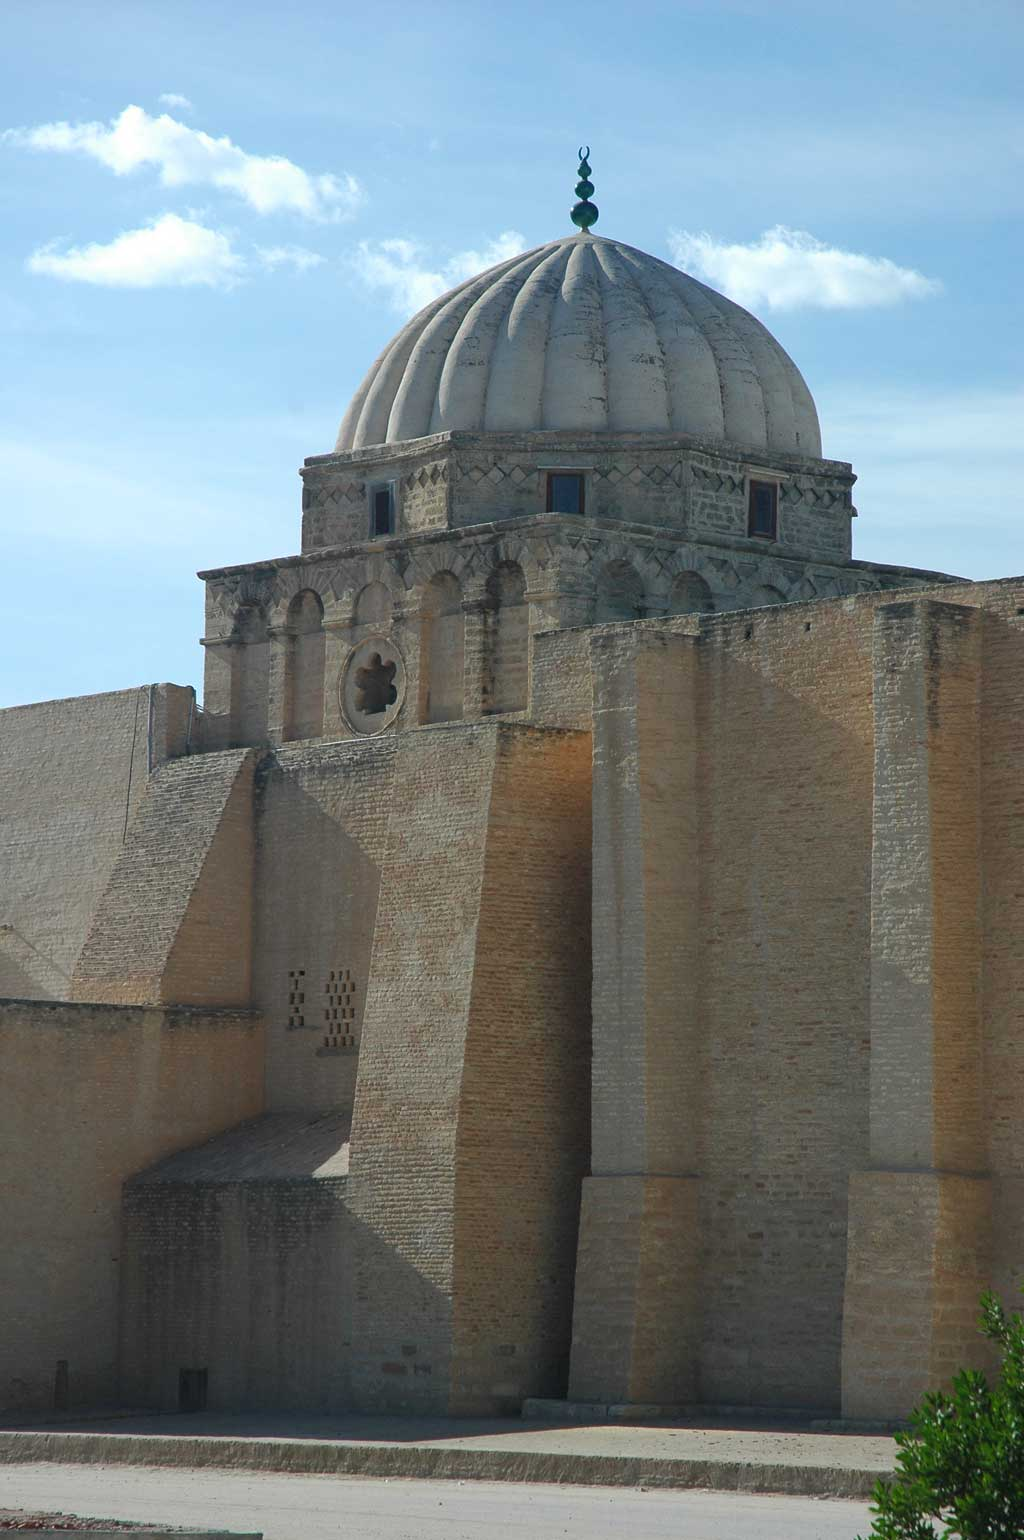 Dome of the mihrab that sits atop the Great Mosque of Kairouan, also known as the Mosque of Uqba, in Kairouan, Tunisia.